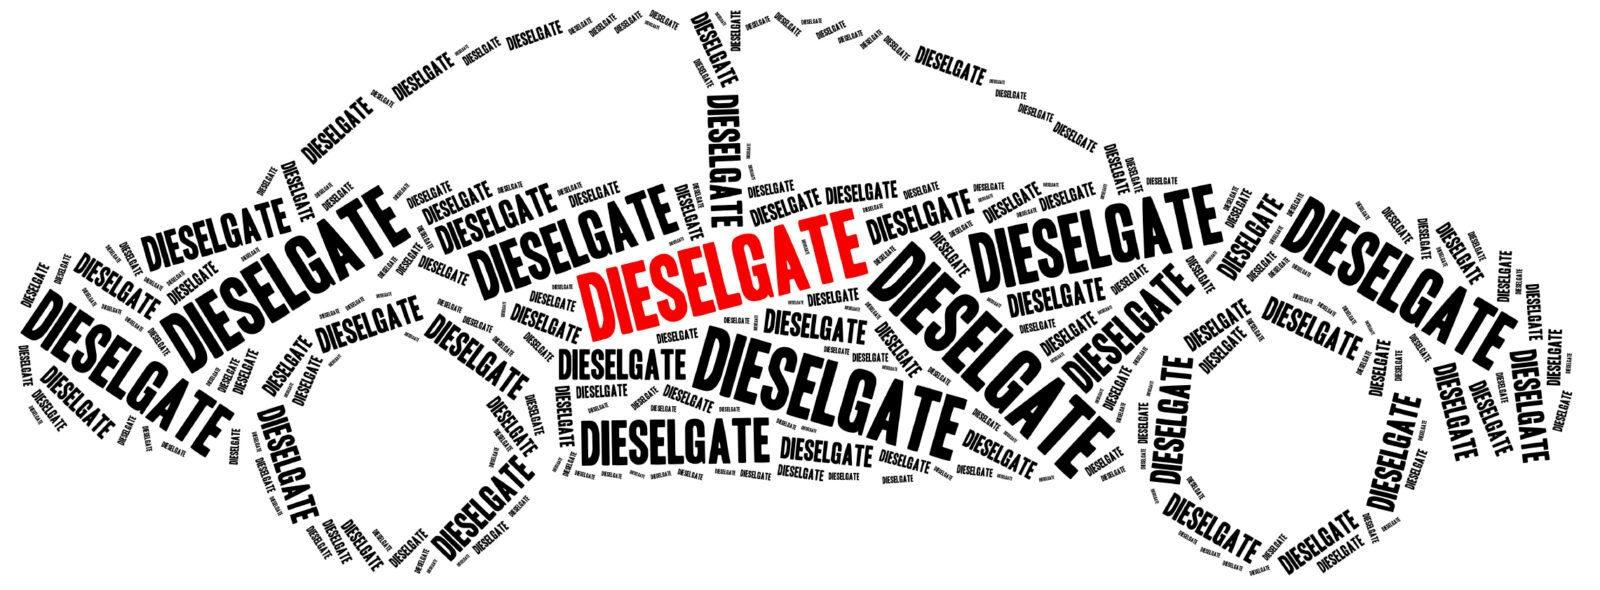 VW Diesel scandal. Concept related to cheating in pollution emission tests